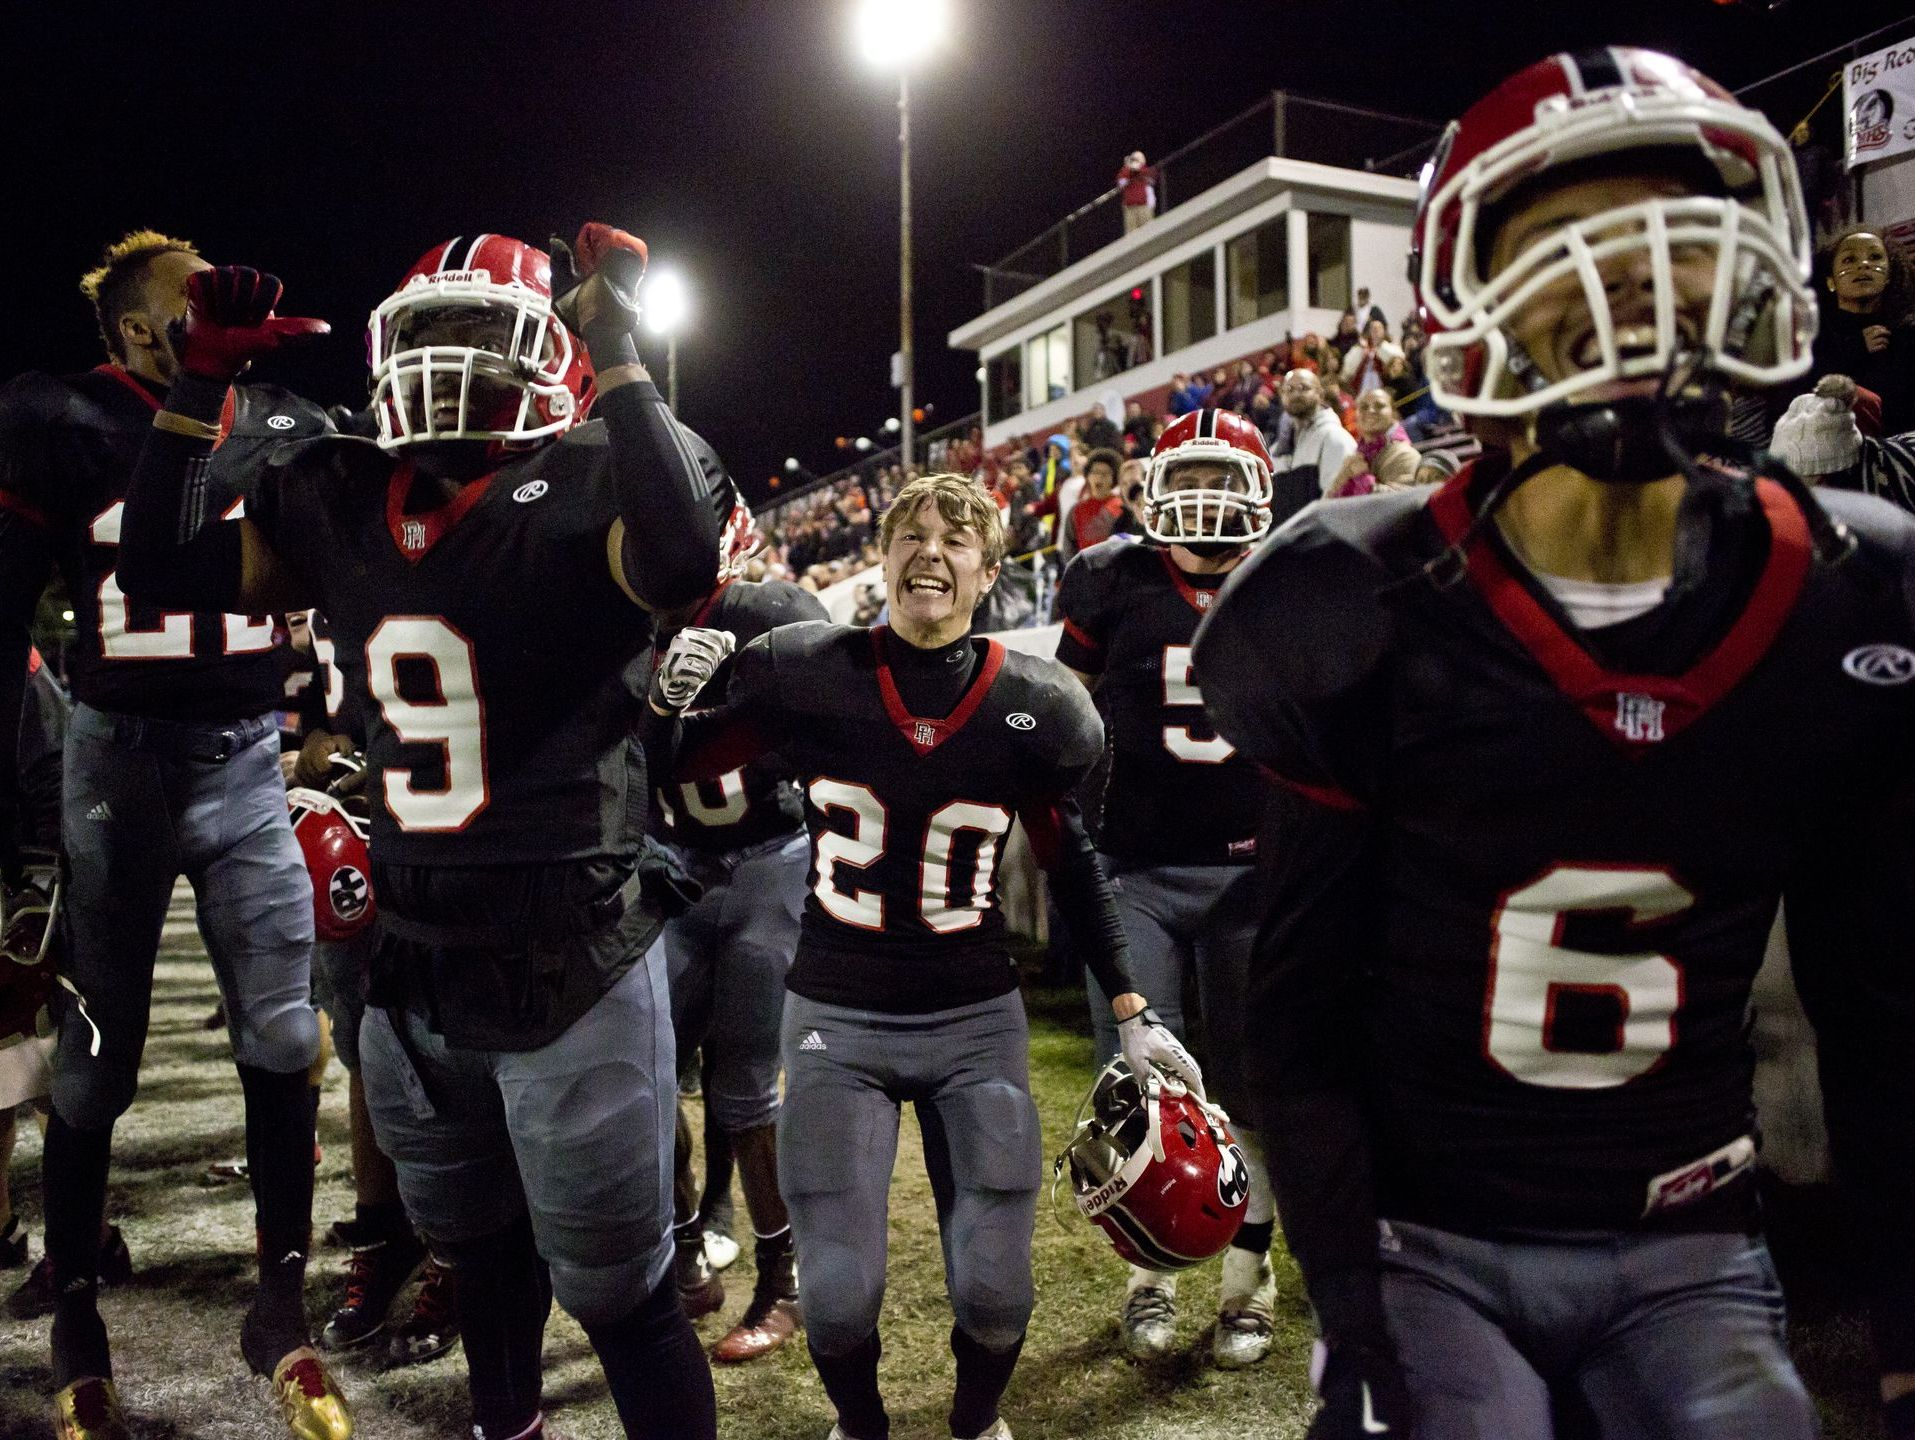 Port Huron players react as they score a touchdown during the Crosstown Showdown Friday, October 23, 2015 at Memorial Stadium in Port Huron.